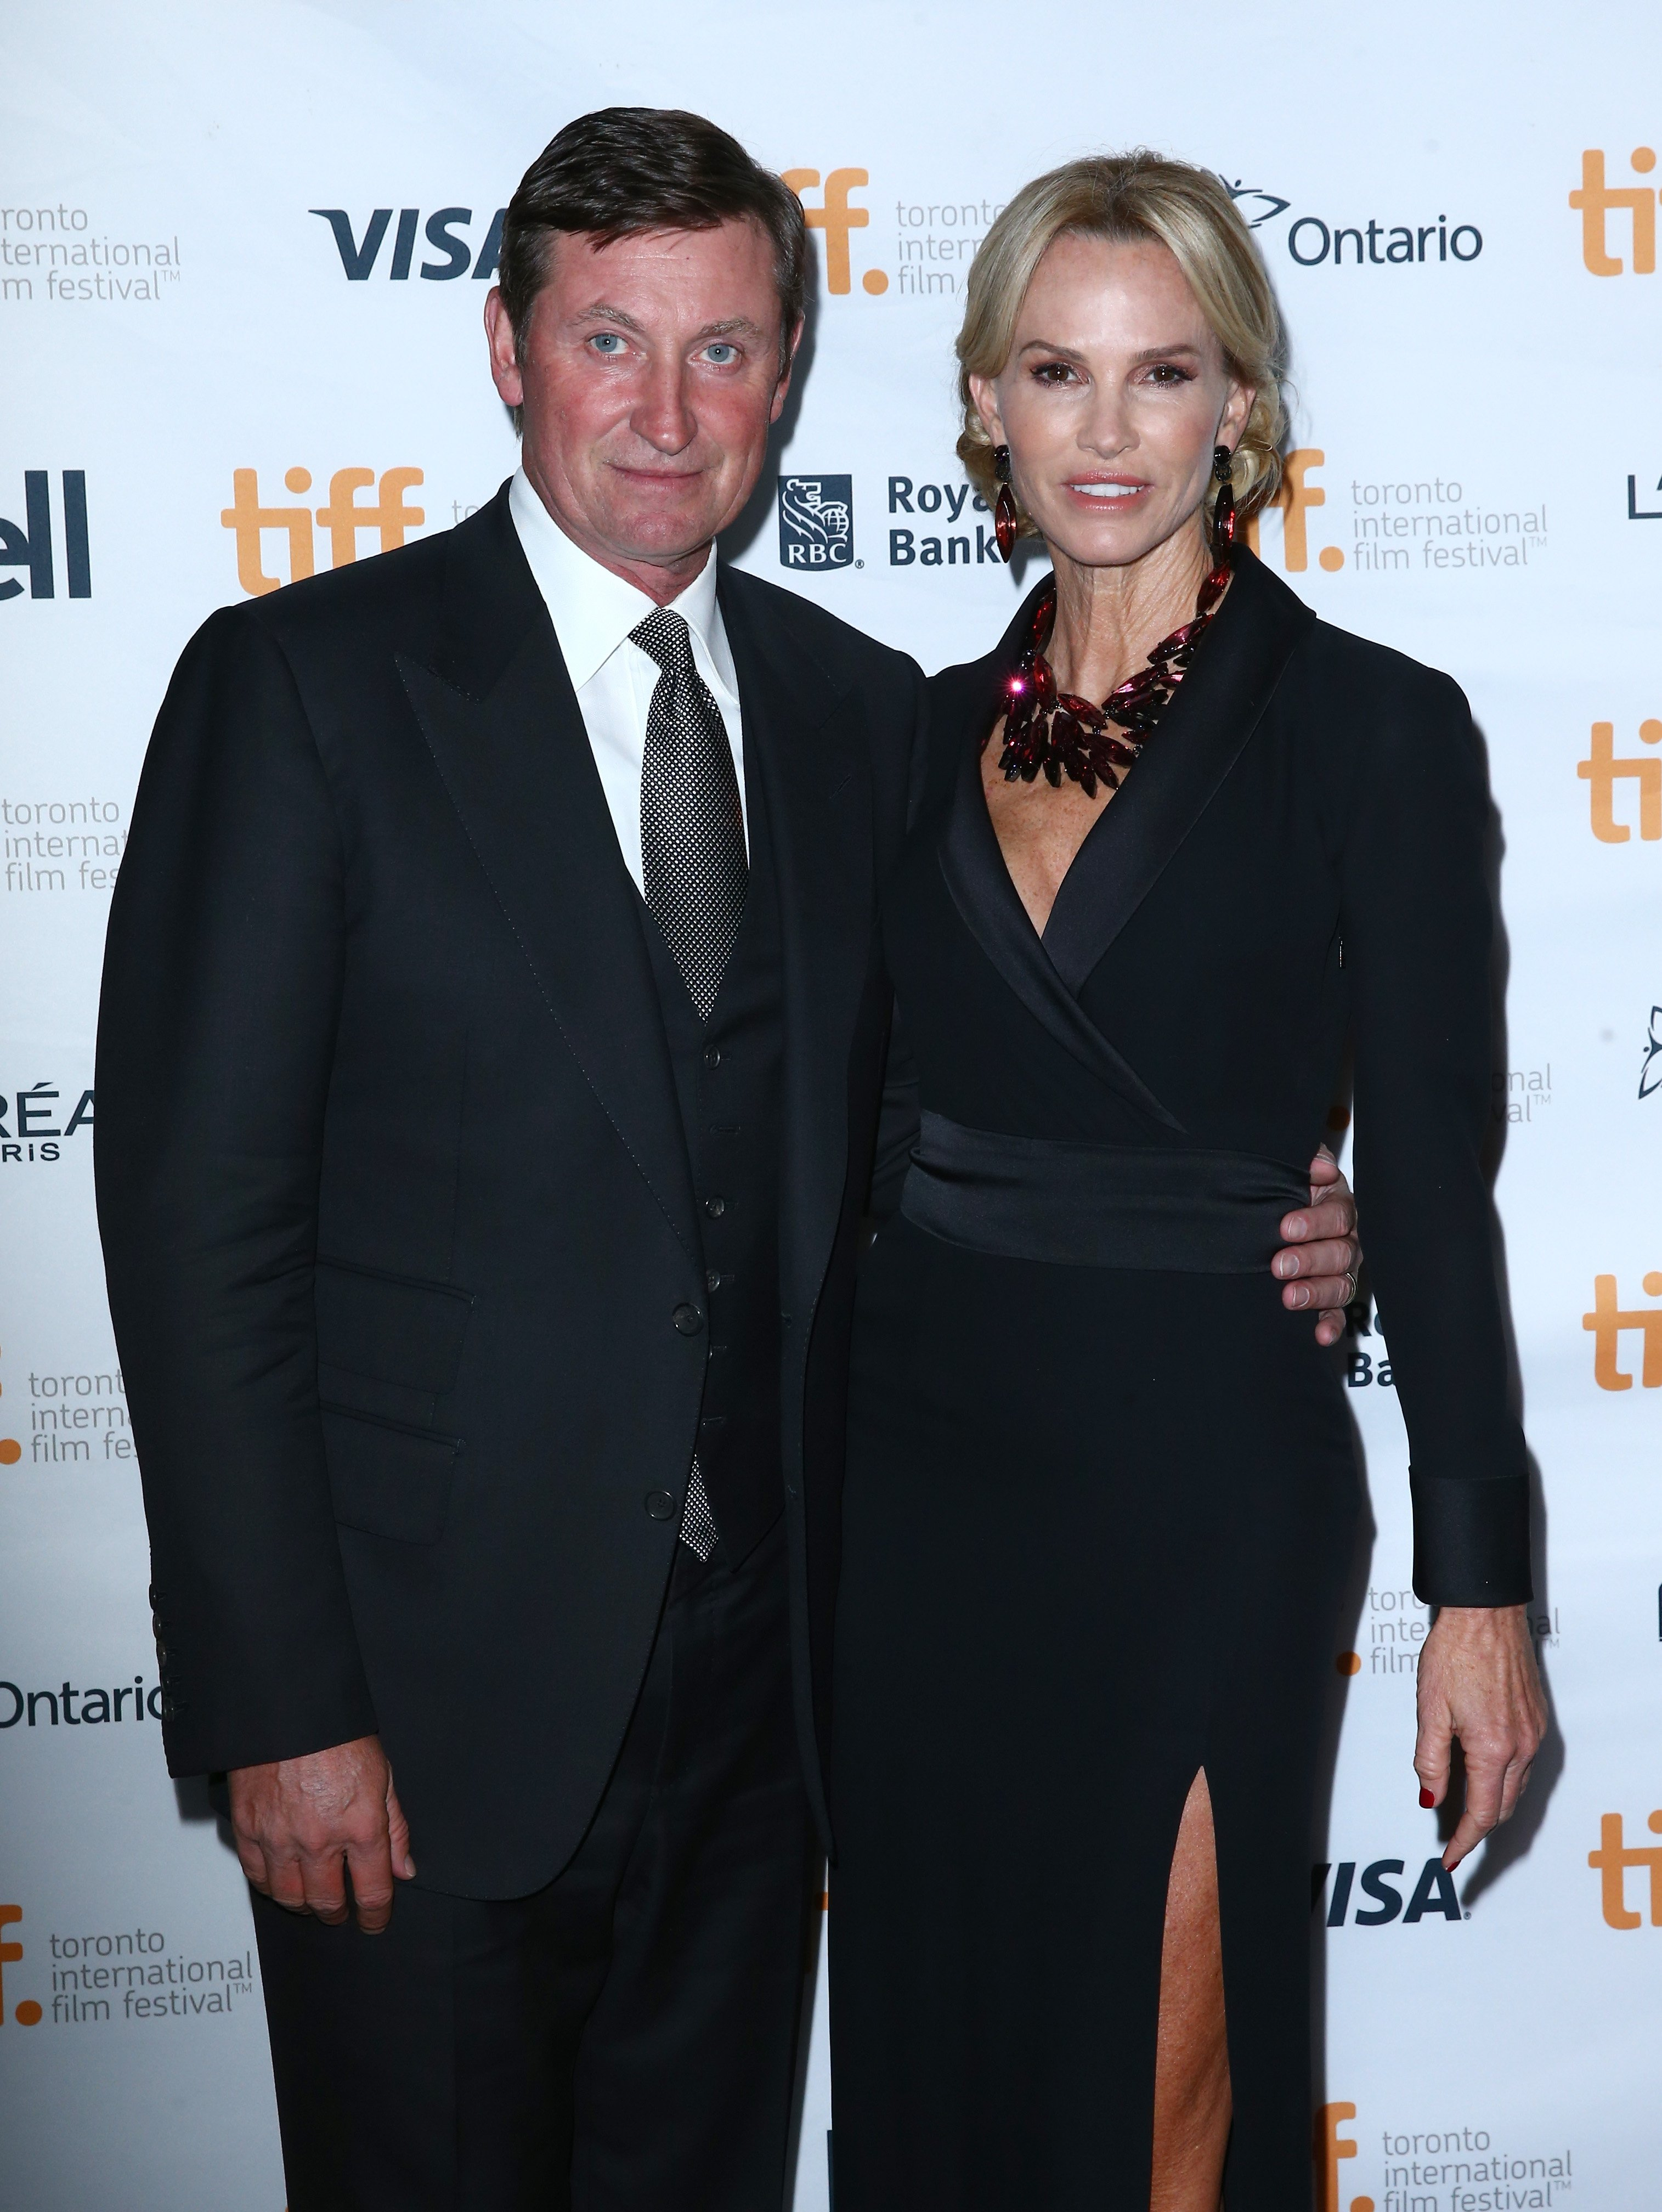 """Wayne Gretzky and actress Janet Jones attend the """"The Sound And The Fury"""" Premiere at Ryerson Theatre on September 6, 2014 in Toronto, Canada   Photo: Getty Images"""